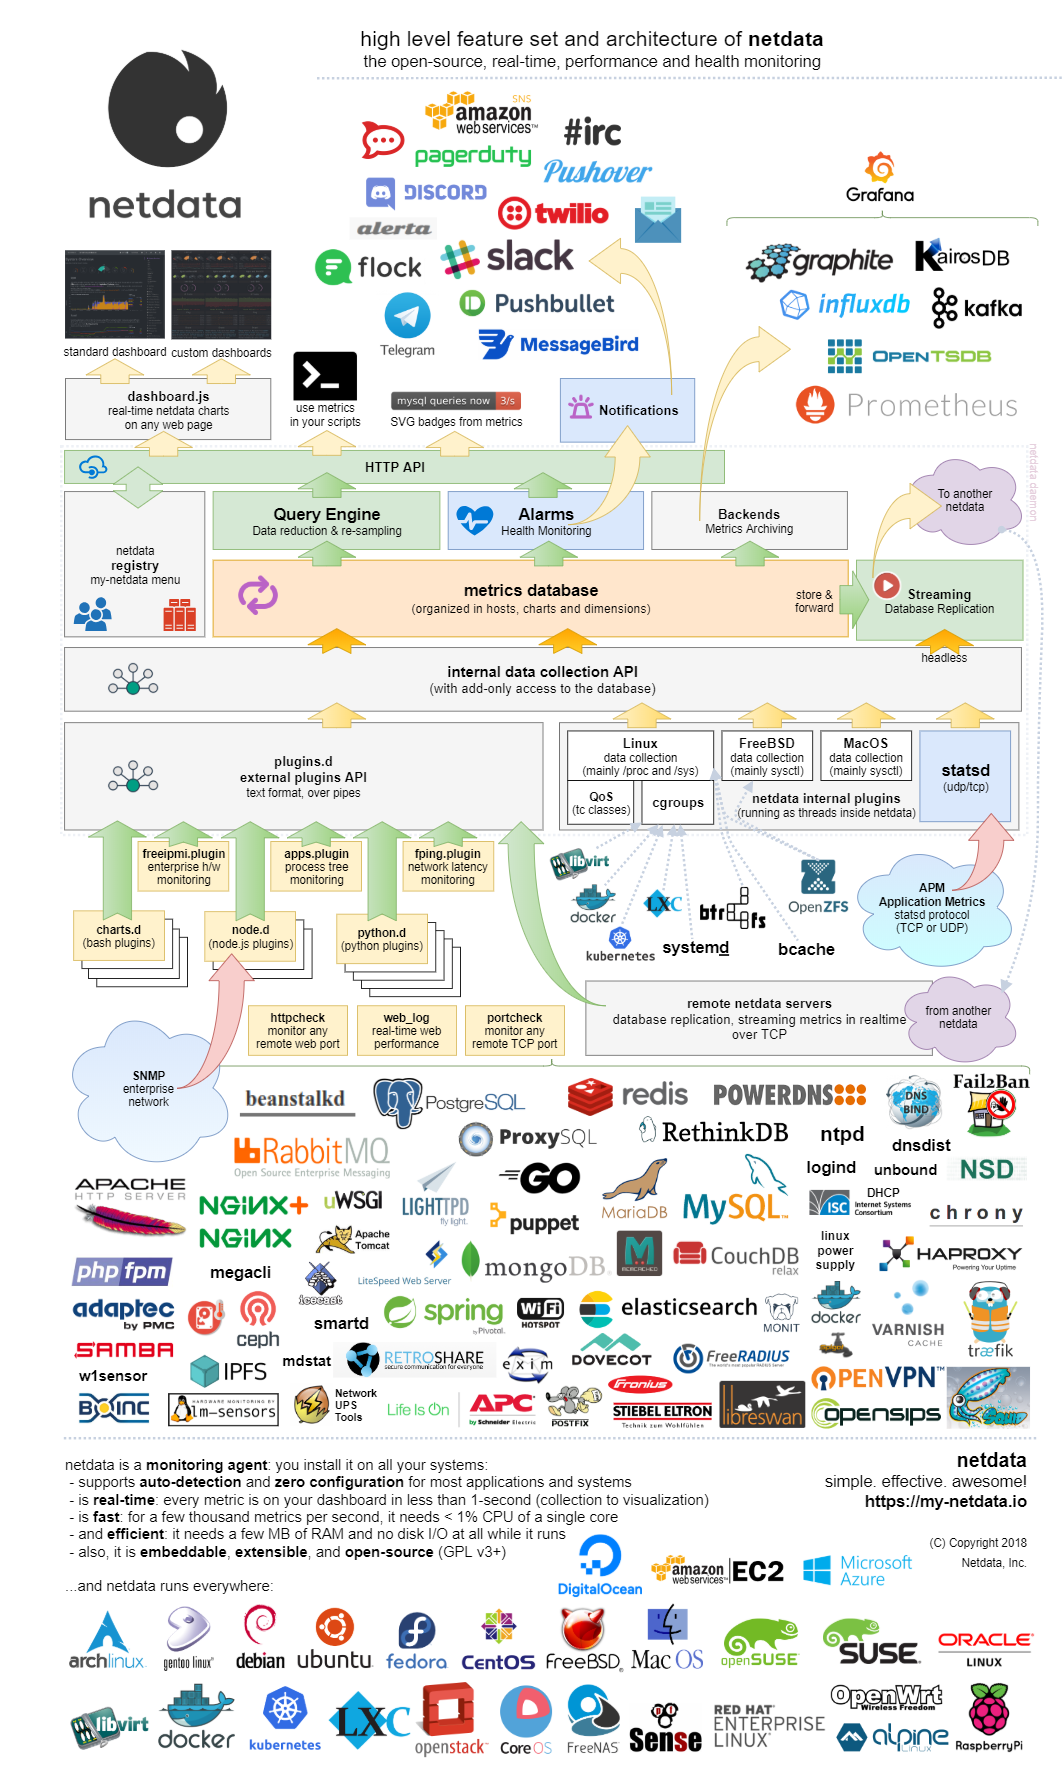 my-netdata.io_infographic.html (5).png